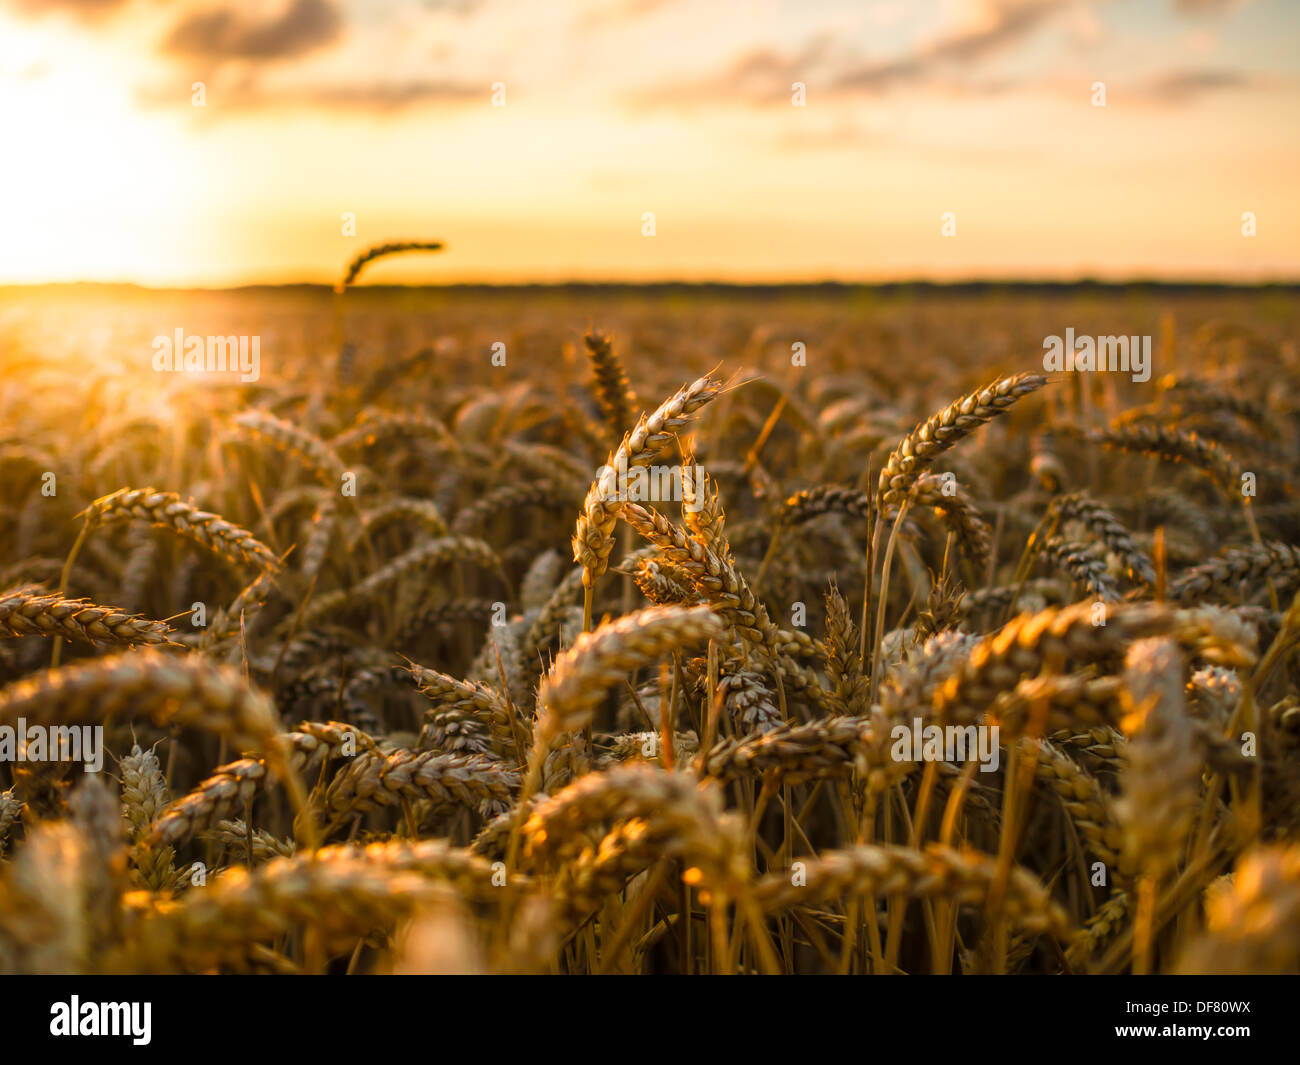 Wheat field at golden sunset - Stock Image